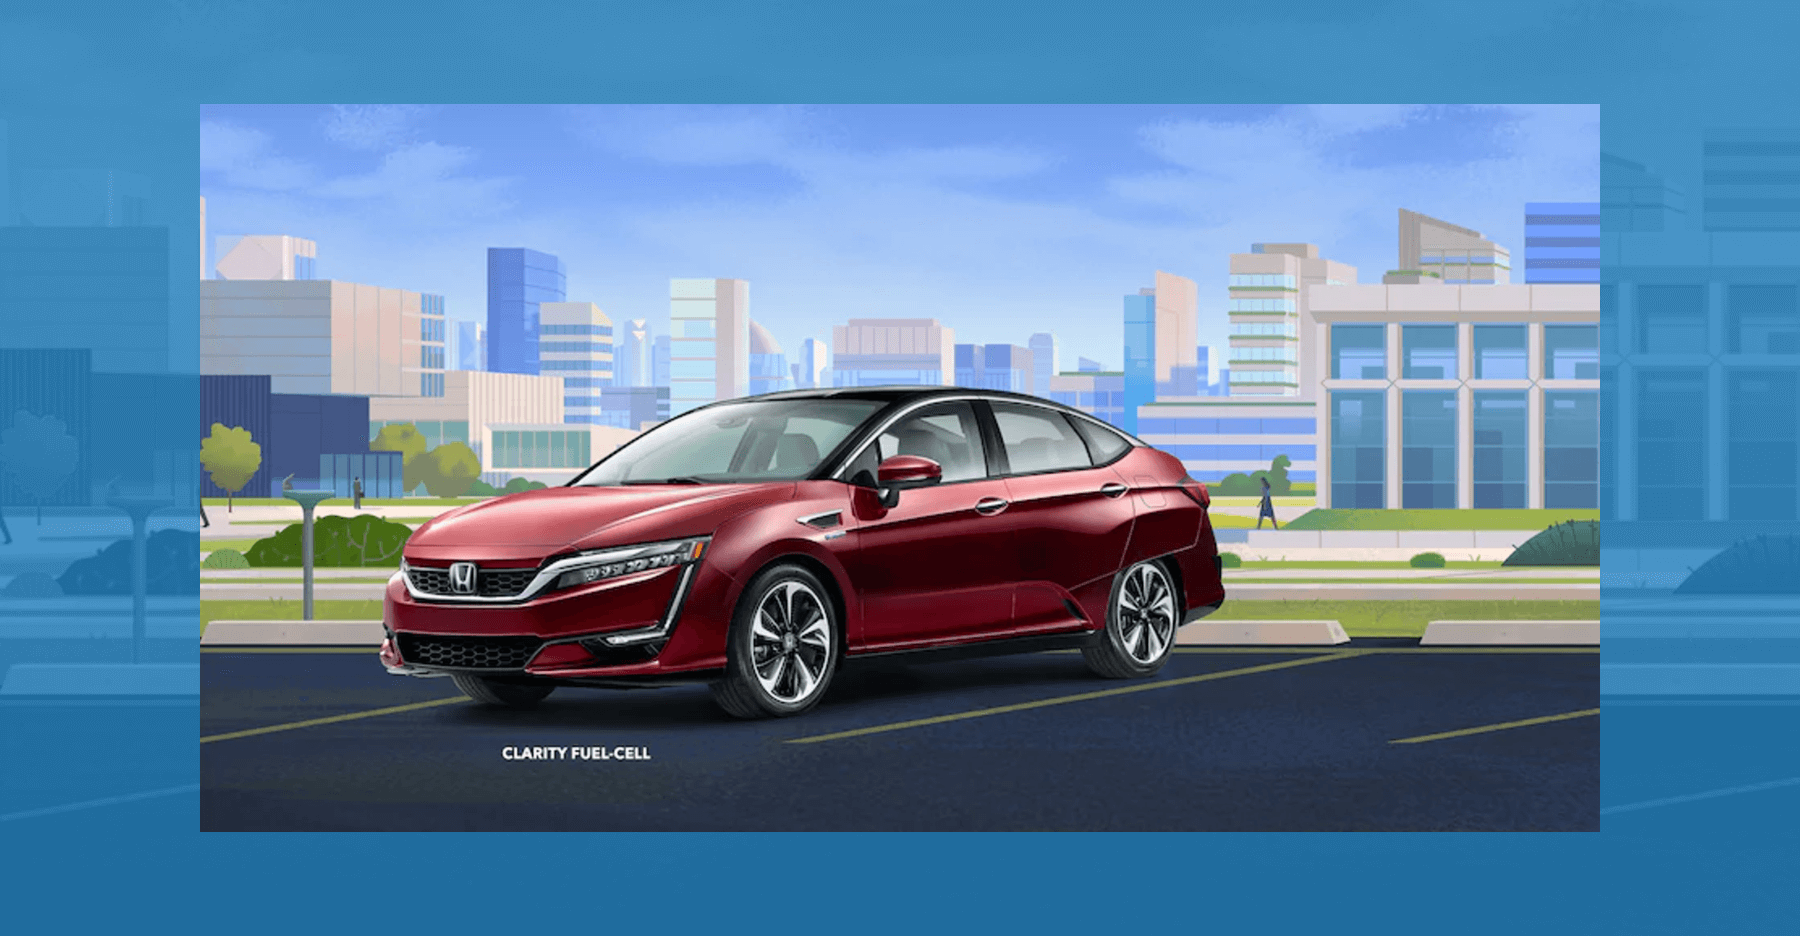 Electrified Education: Honda Clarity Fuel Cell